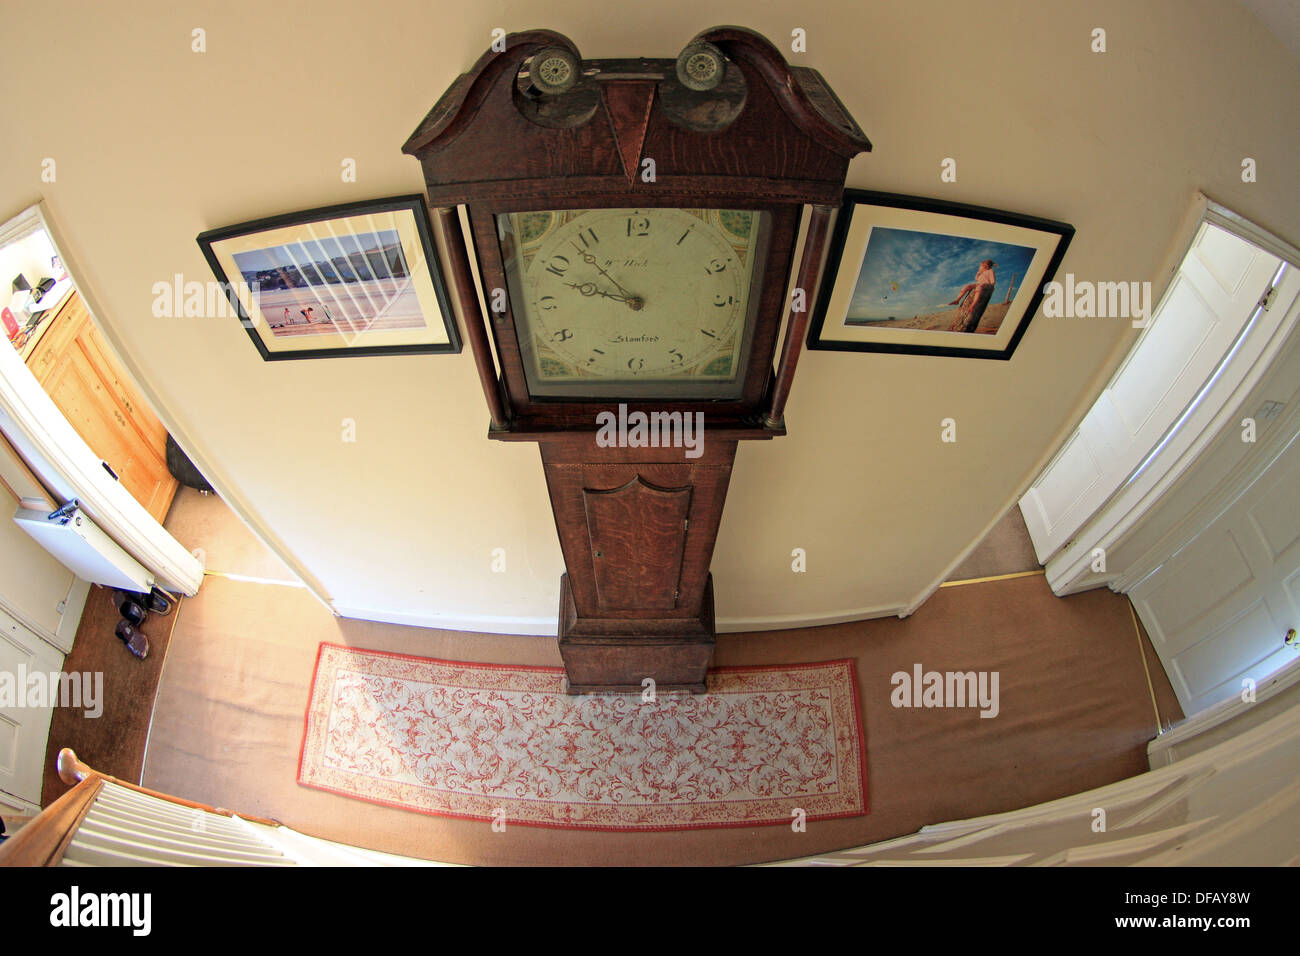 Grandfather clock in house hallway - Stock Image